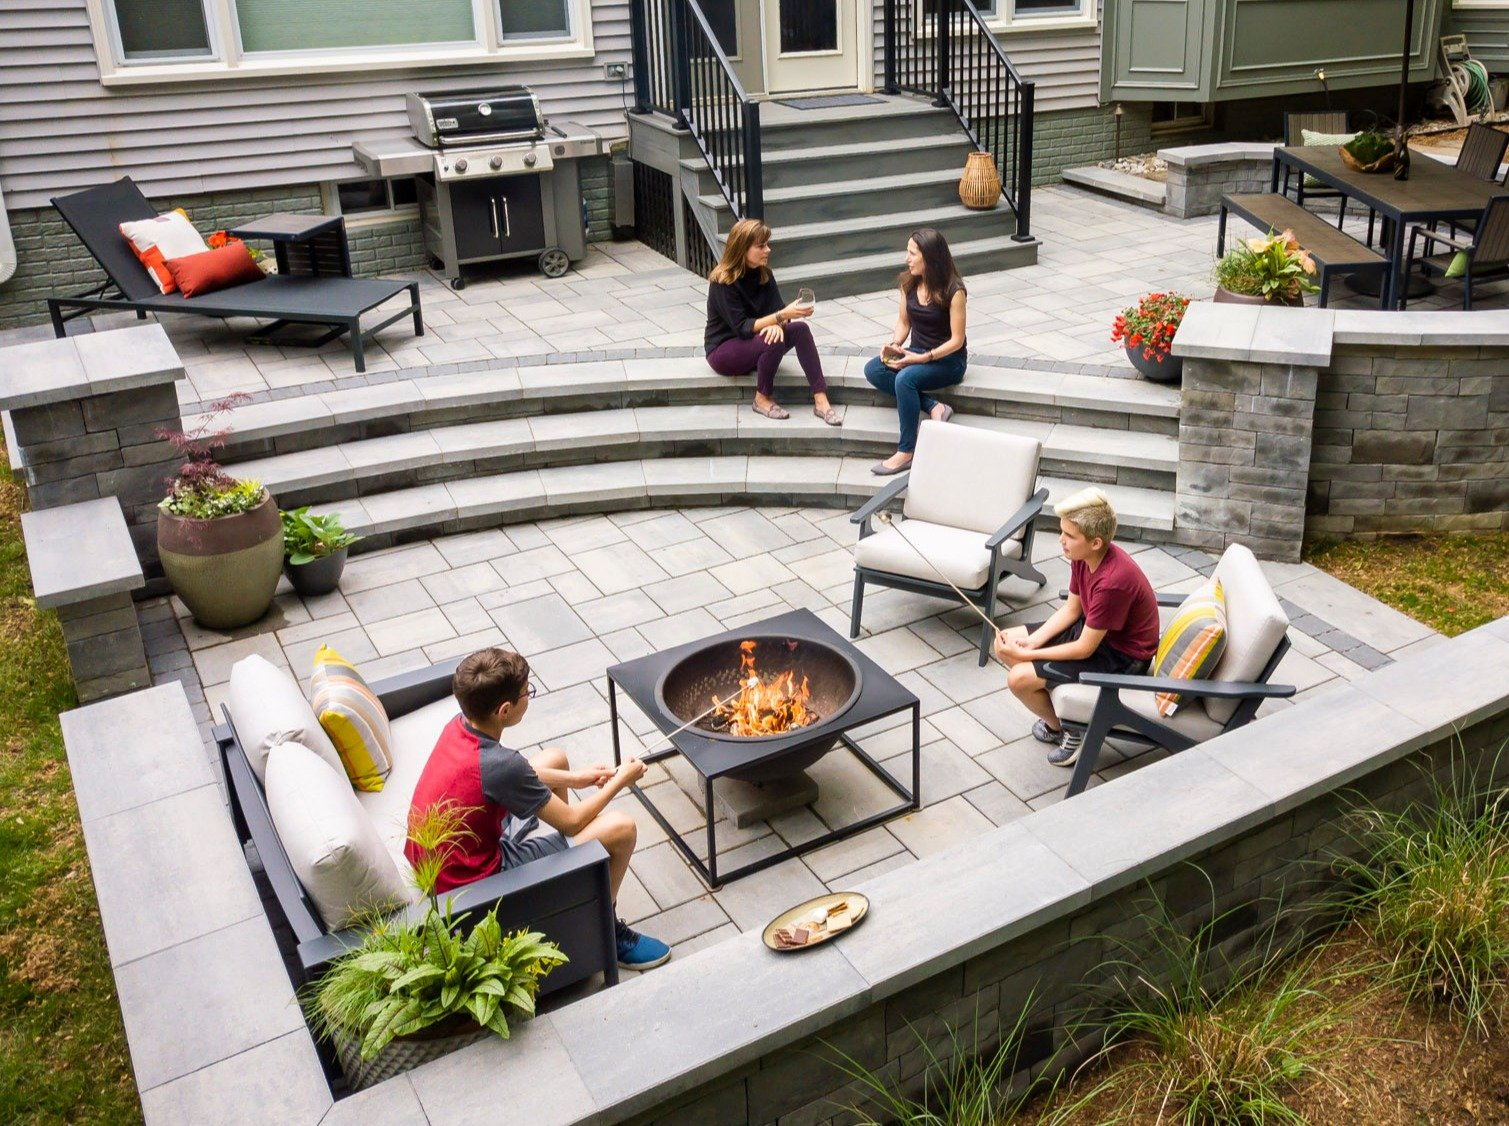 customers gathered around their fire pit and roasting marshmallows